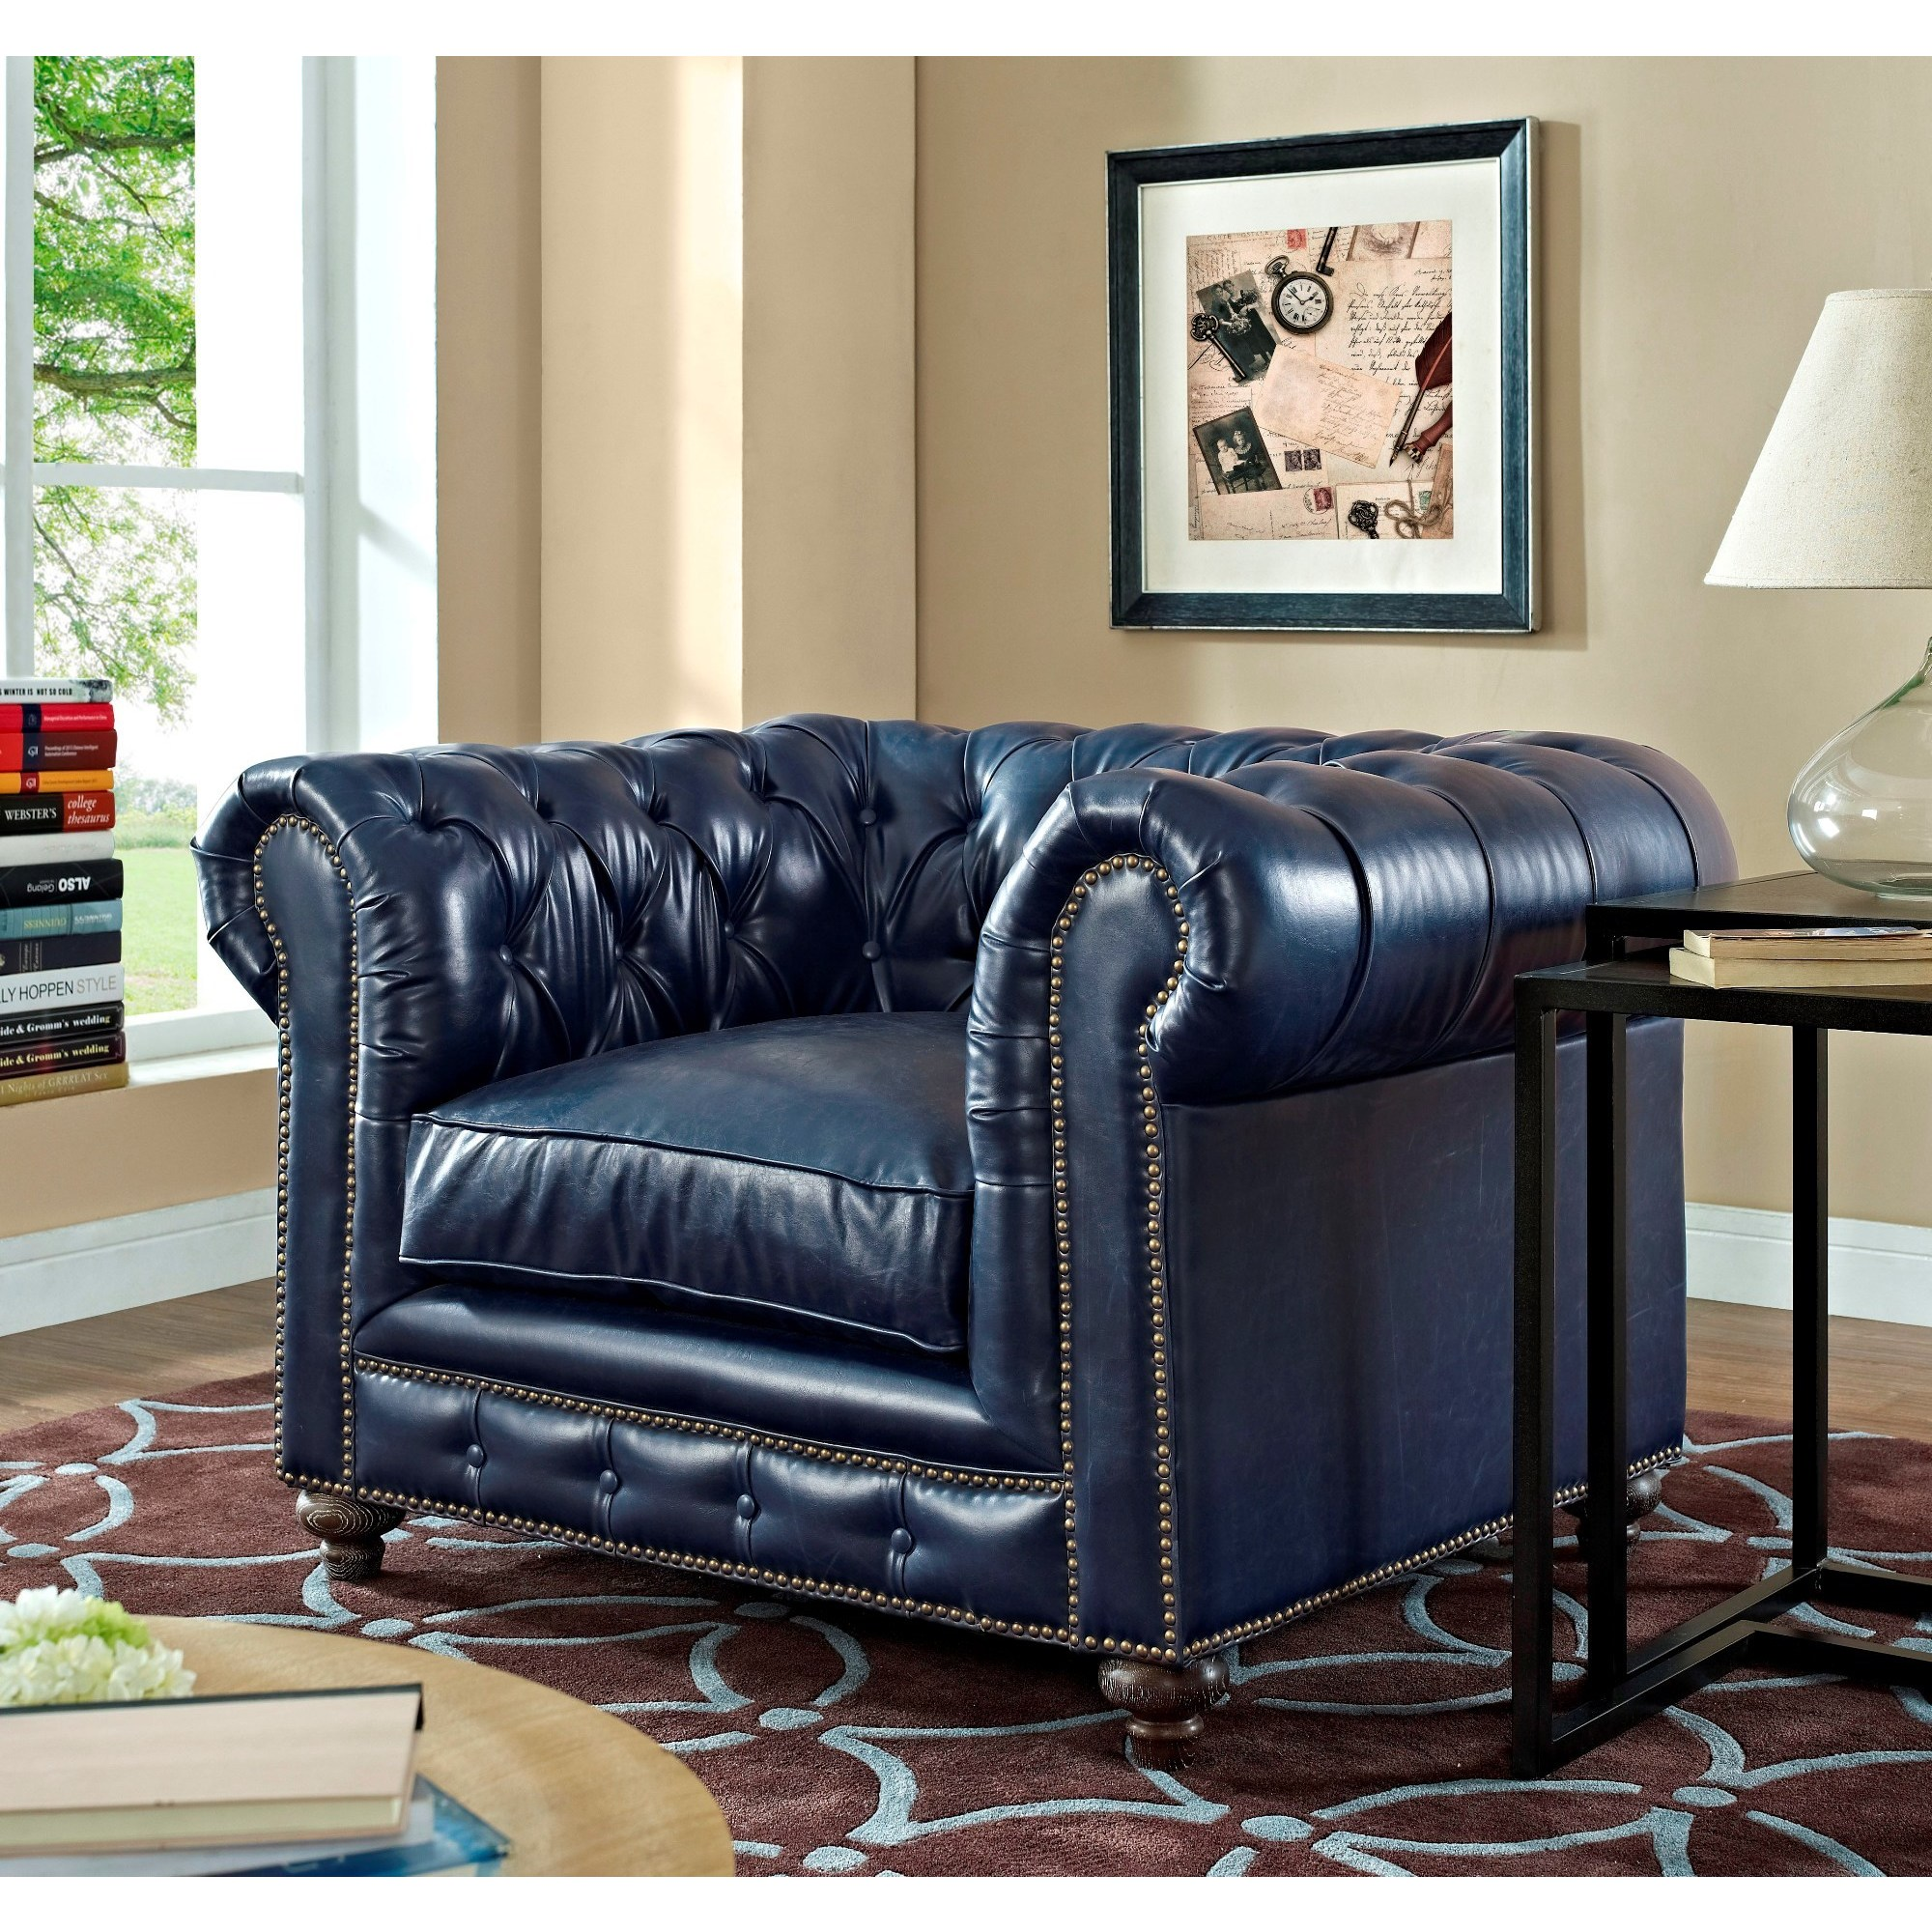 Shop Durango Rustic Blue Leather Living Room Set   Free Shipping Today    Overstock.com   10156789